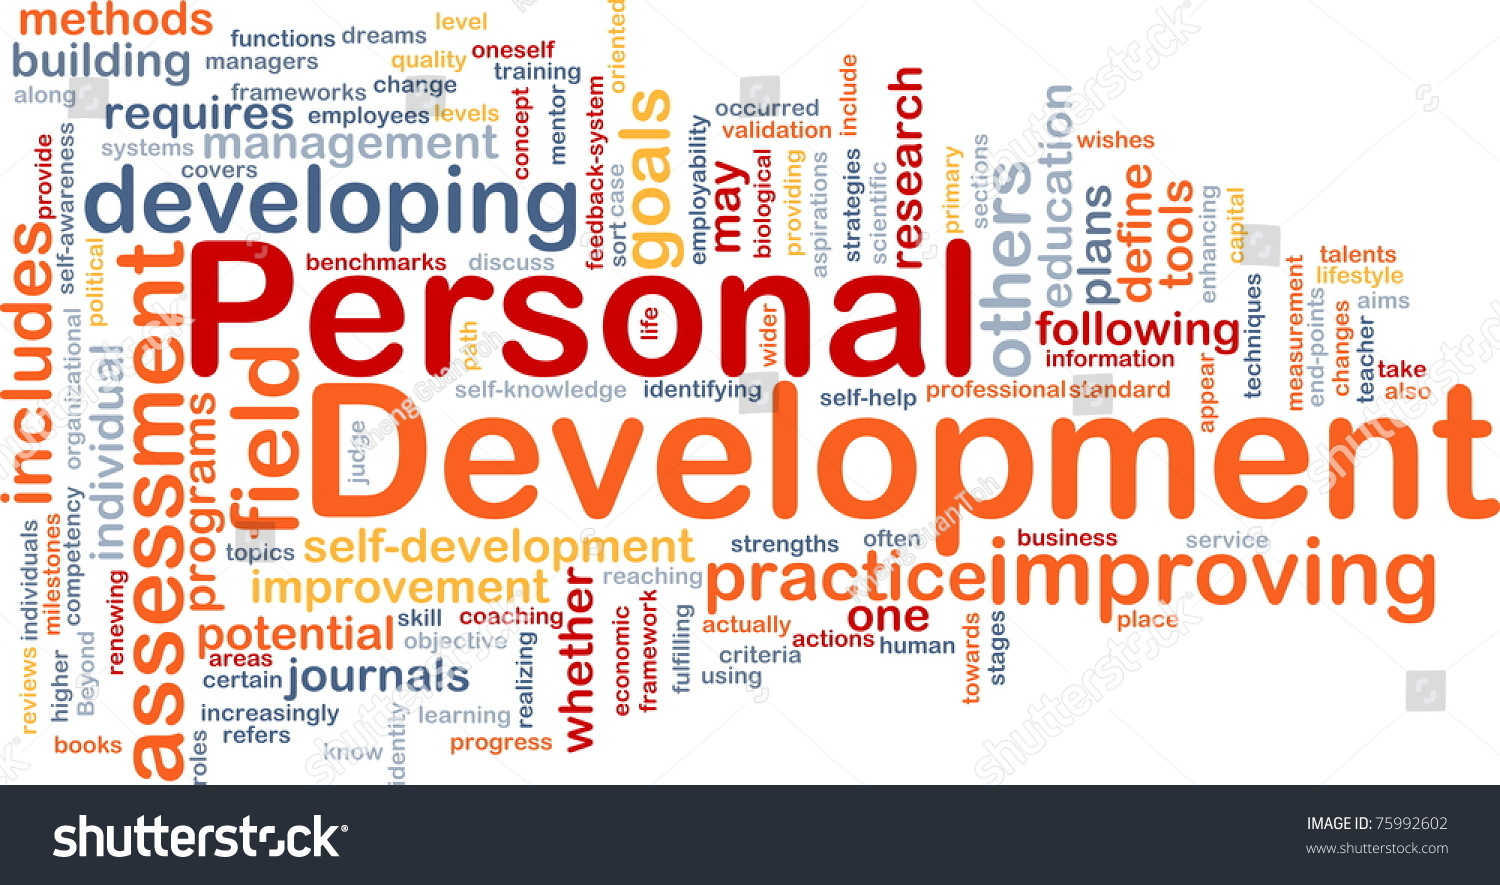 Image result for images for the word personal development